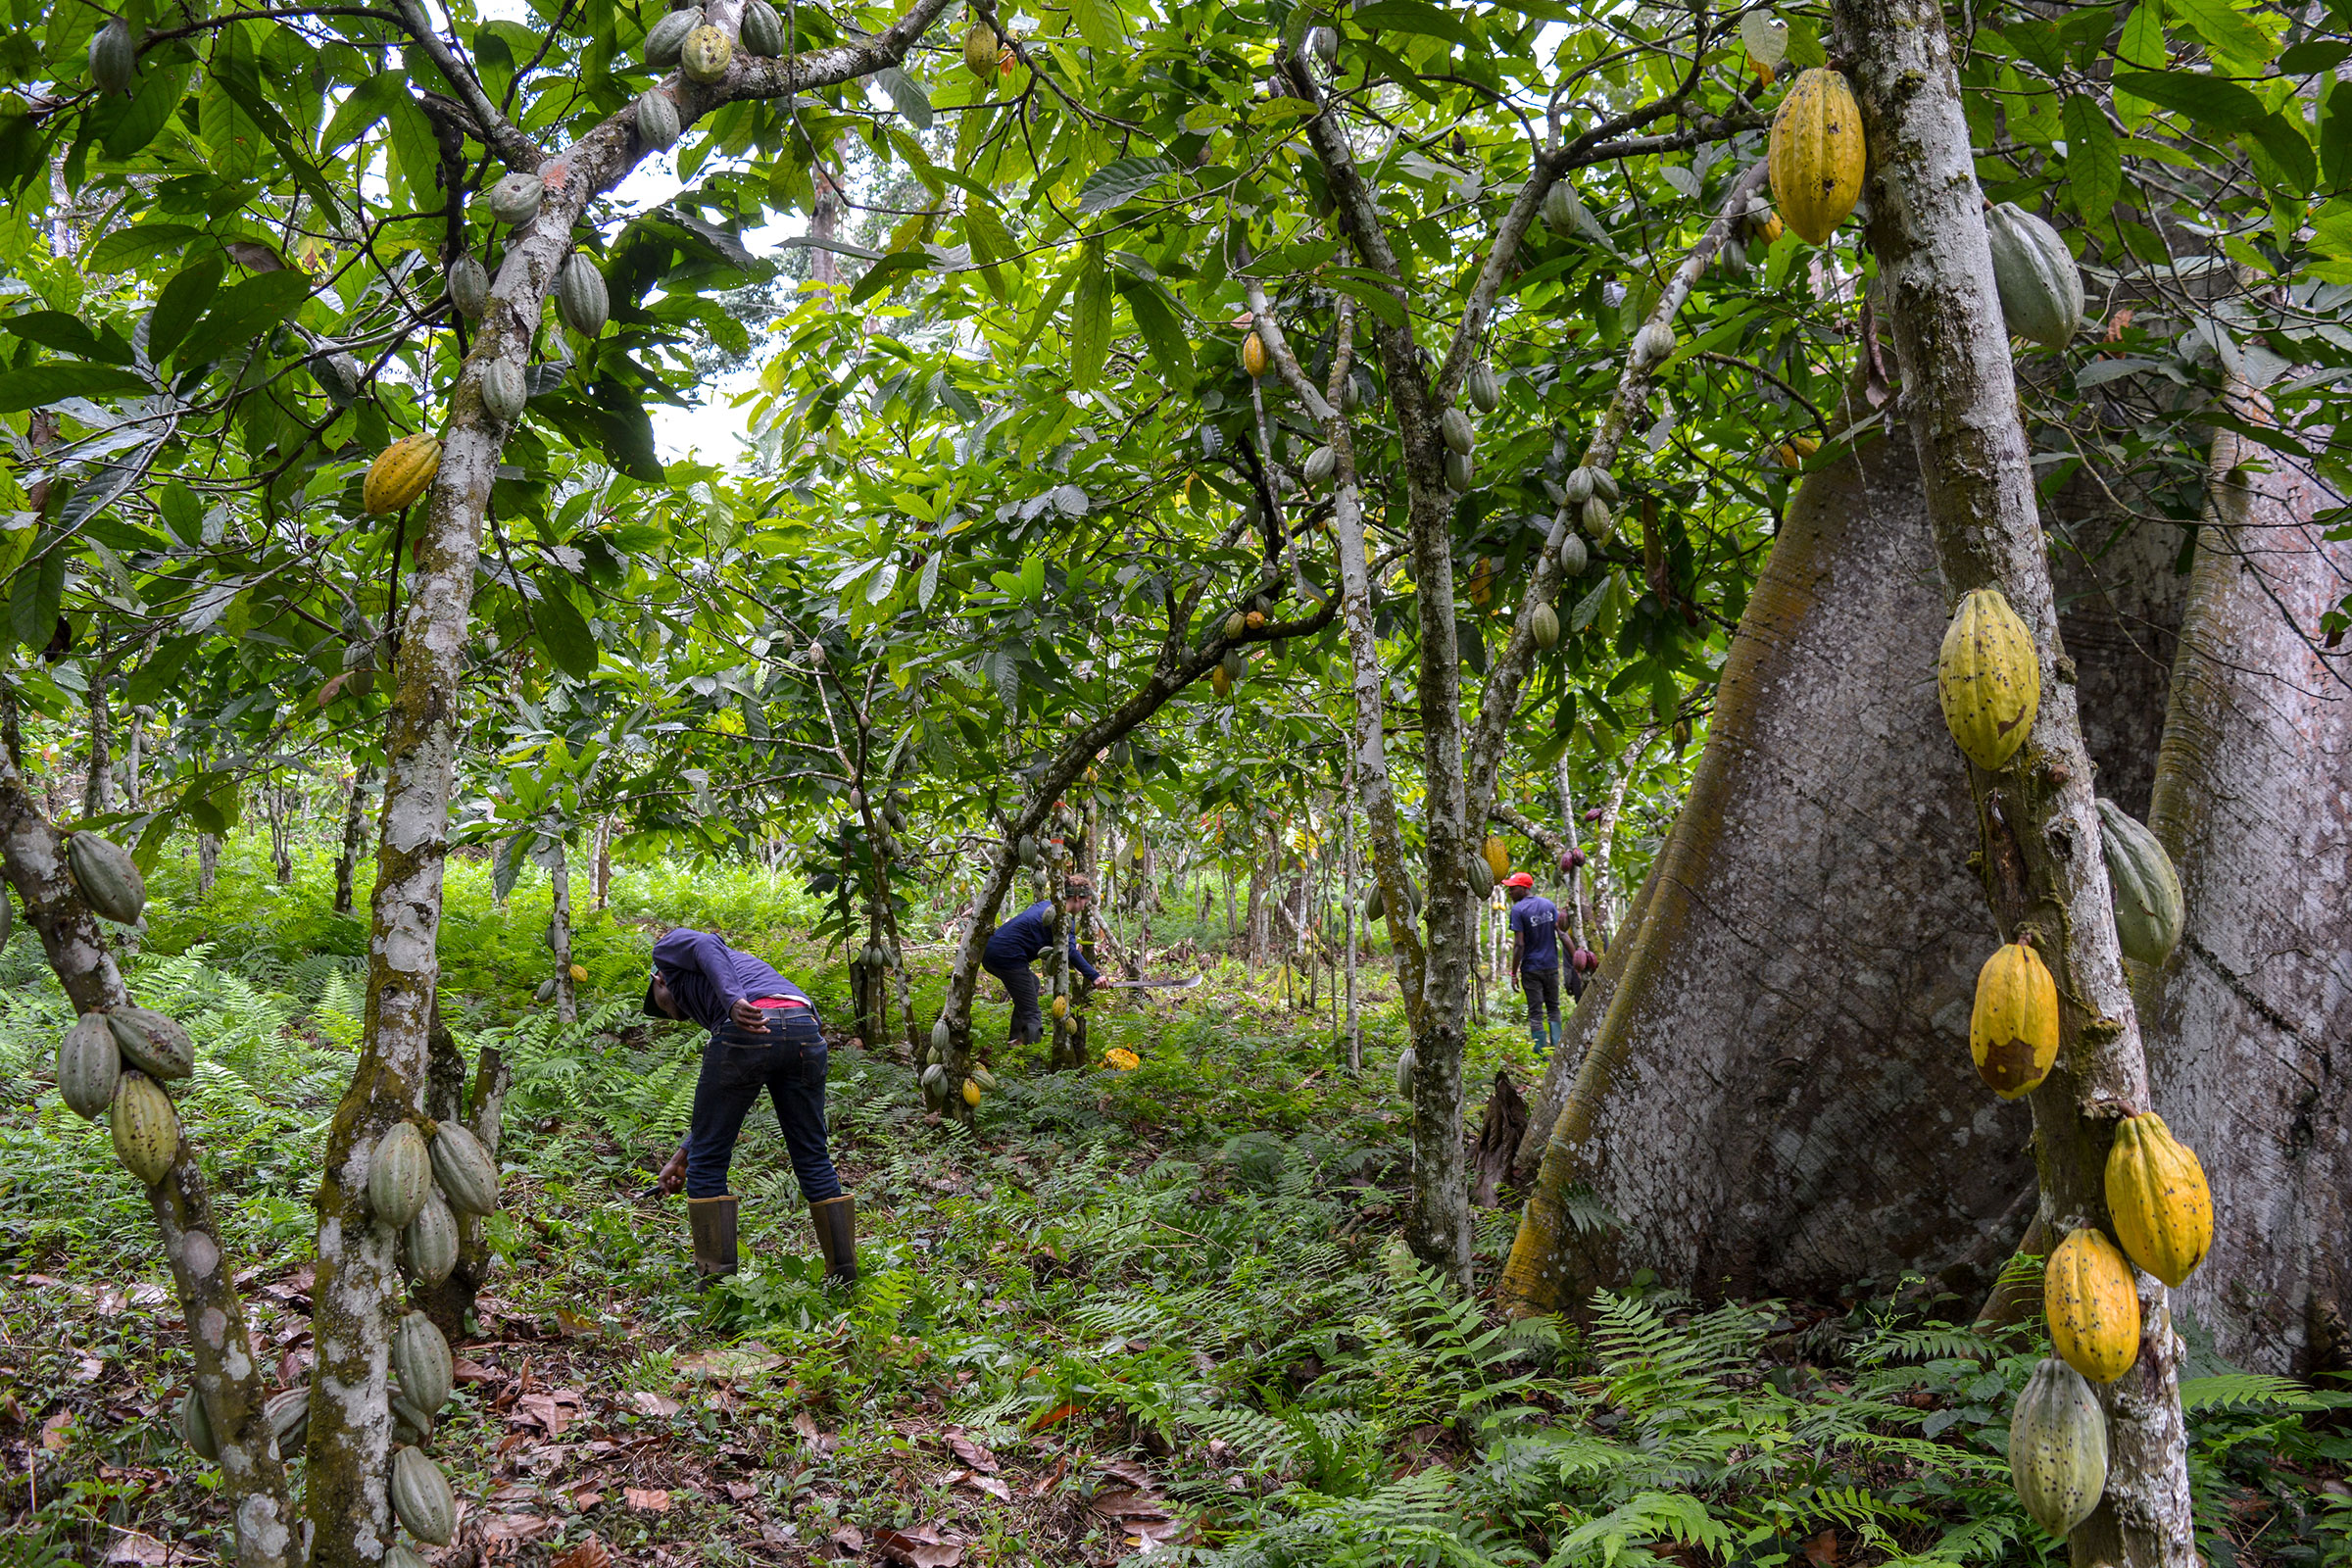 The understory is cleared on a Cameroon cocoa farm about twice a year so workers can access the cocoa trees during harvest and to keep pests under control. Crinan Jarrett